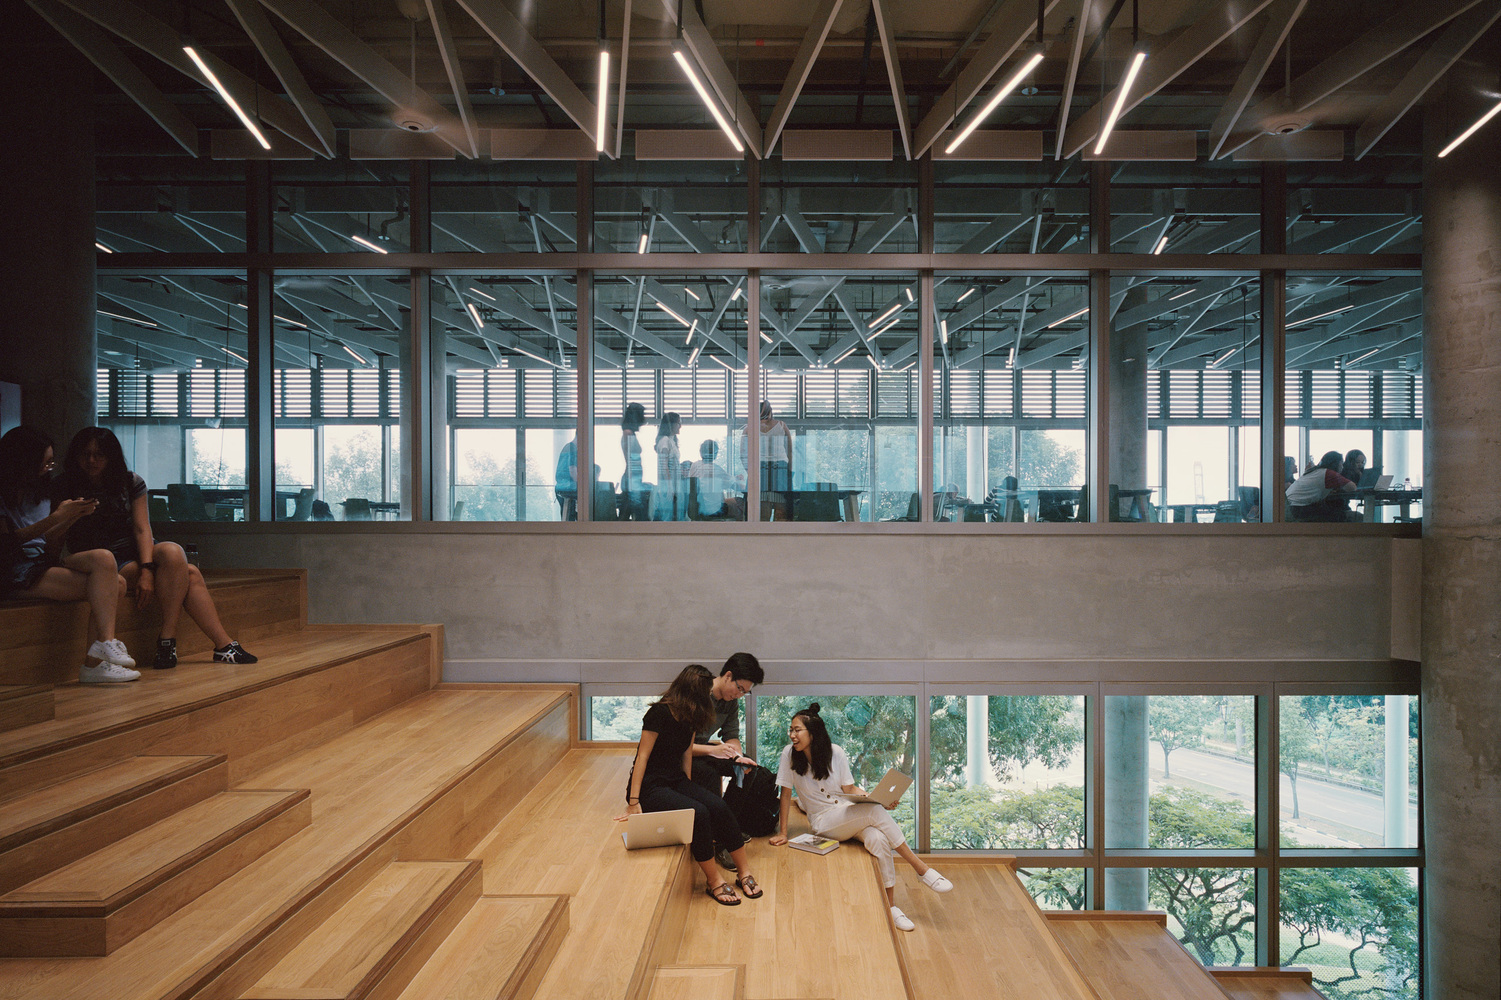 新加坡国立大学设计与环境学院丨Serie Architects + Multiply Architects + Surbana Jurong